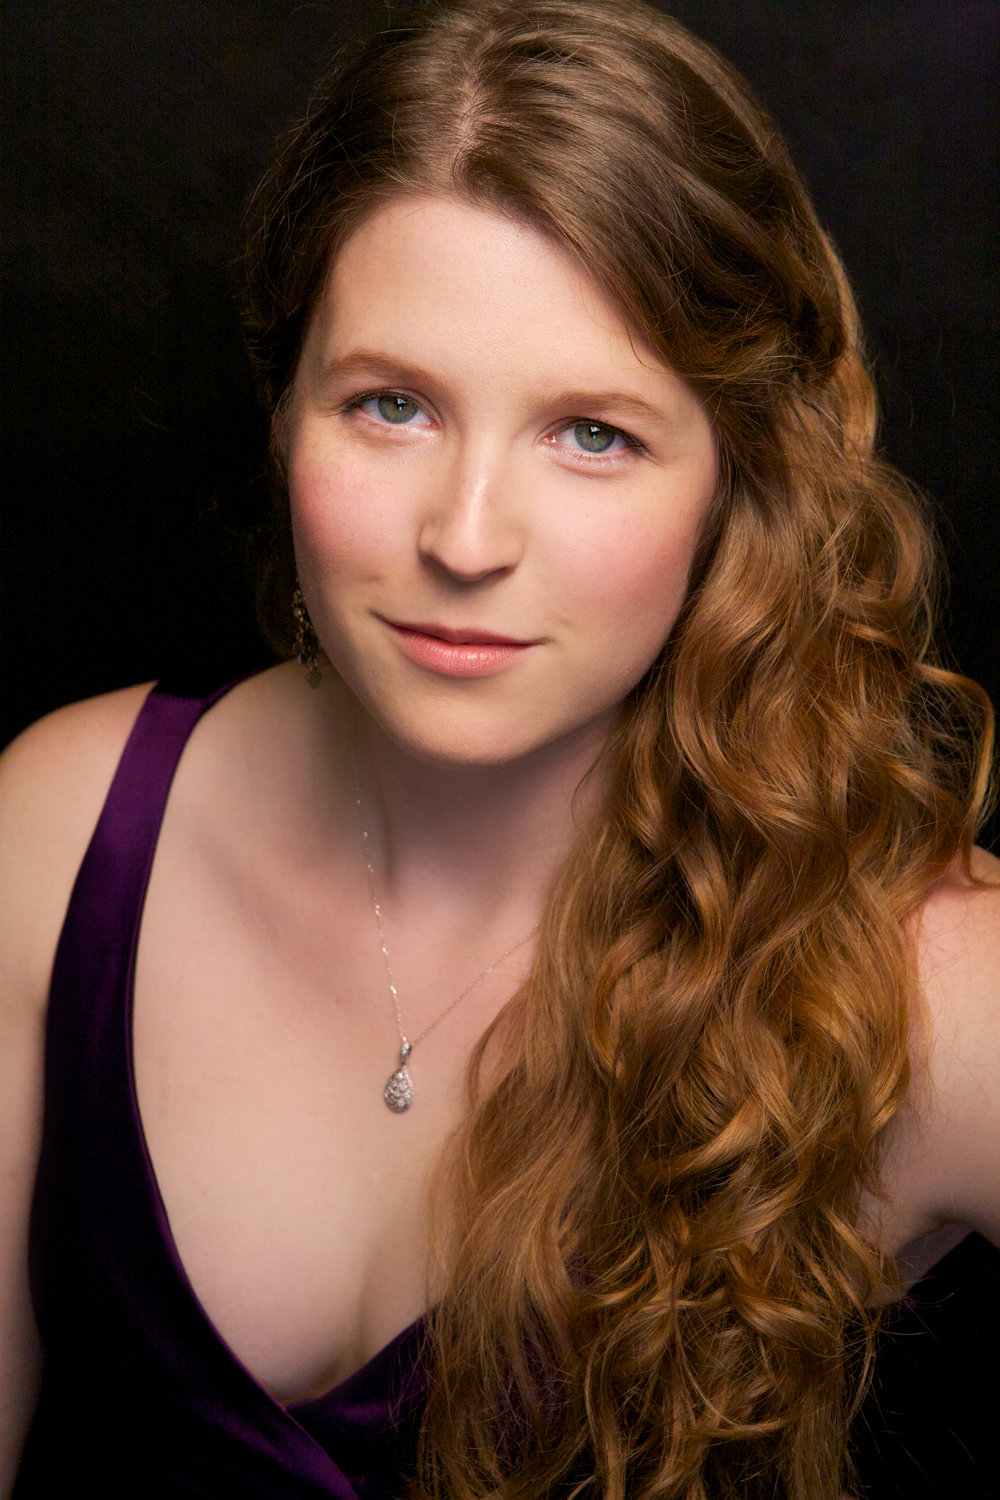 Soprano Siobhan Raupach. CLICK on photo to learn more about her and Kevin